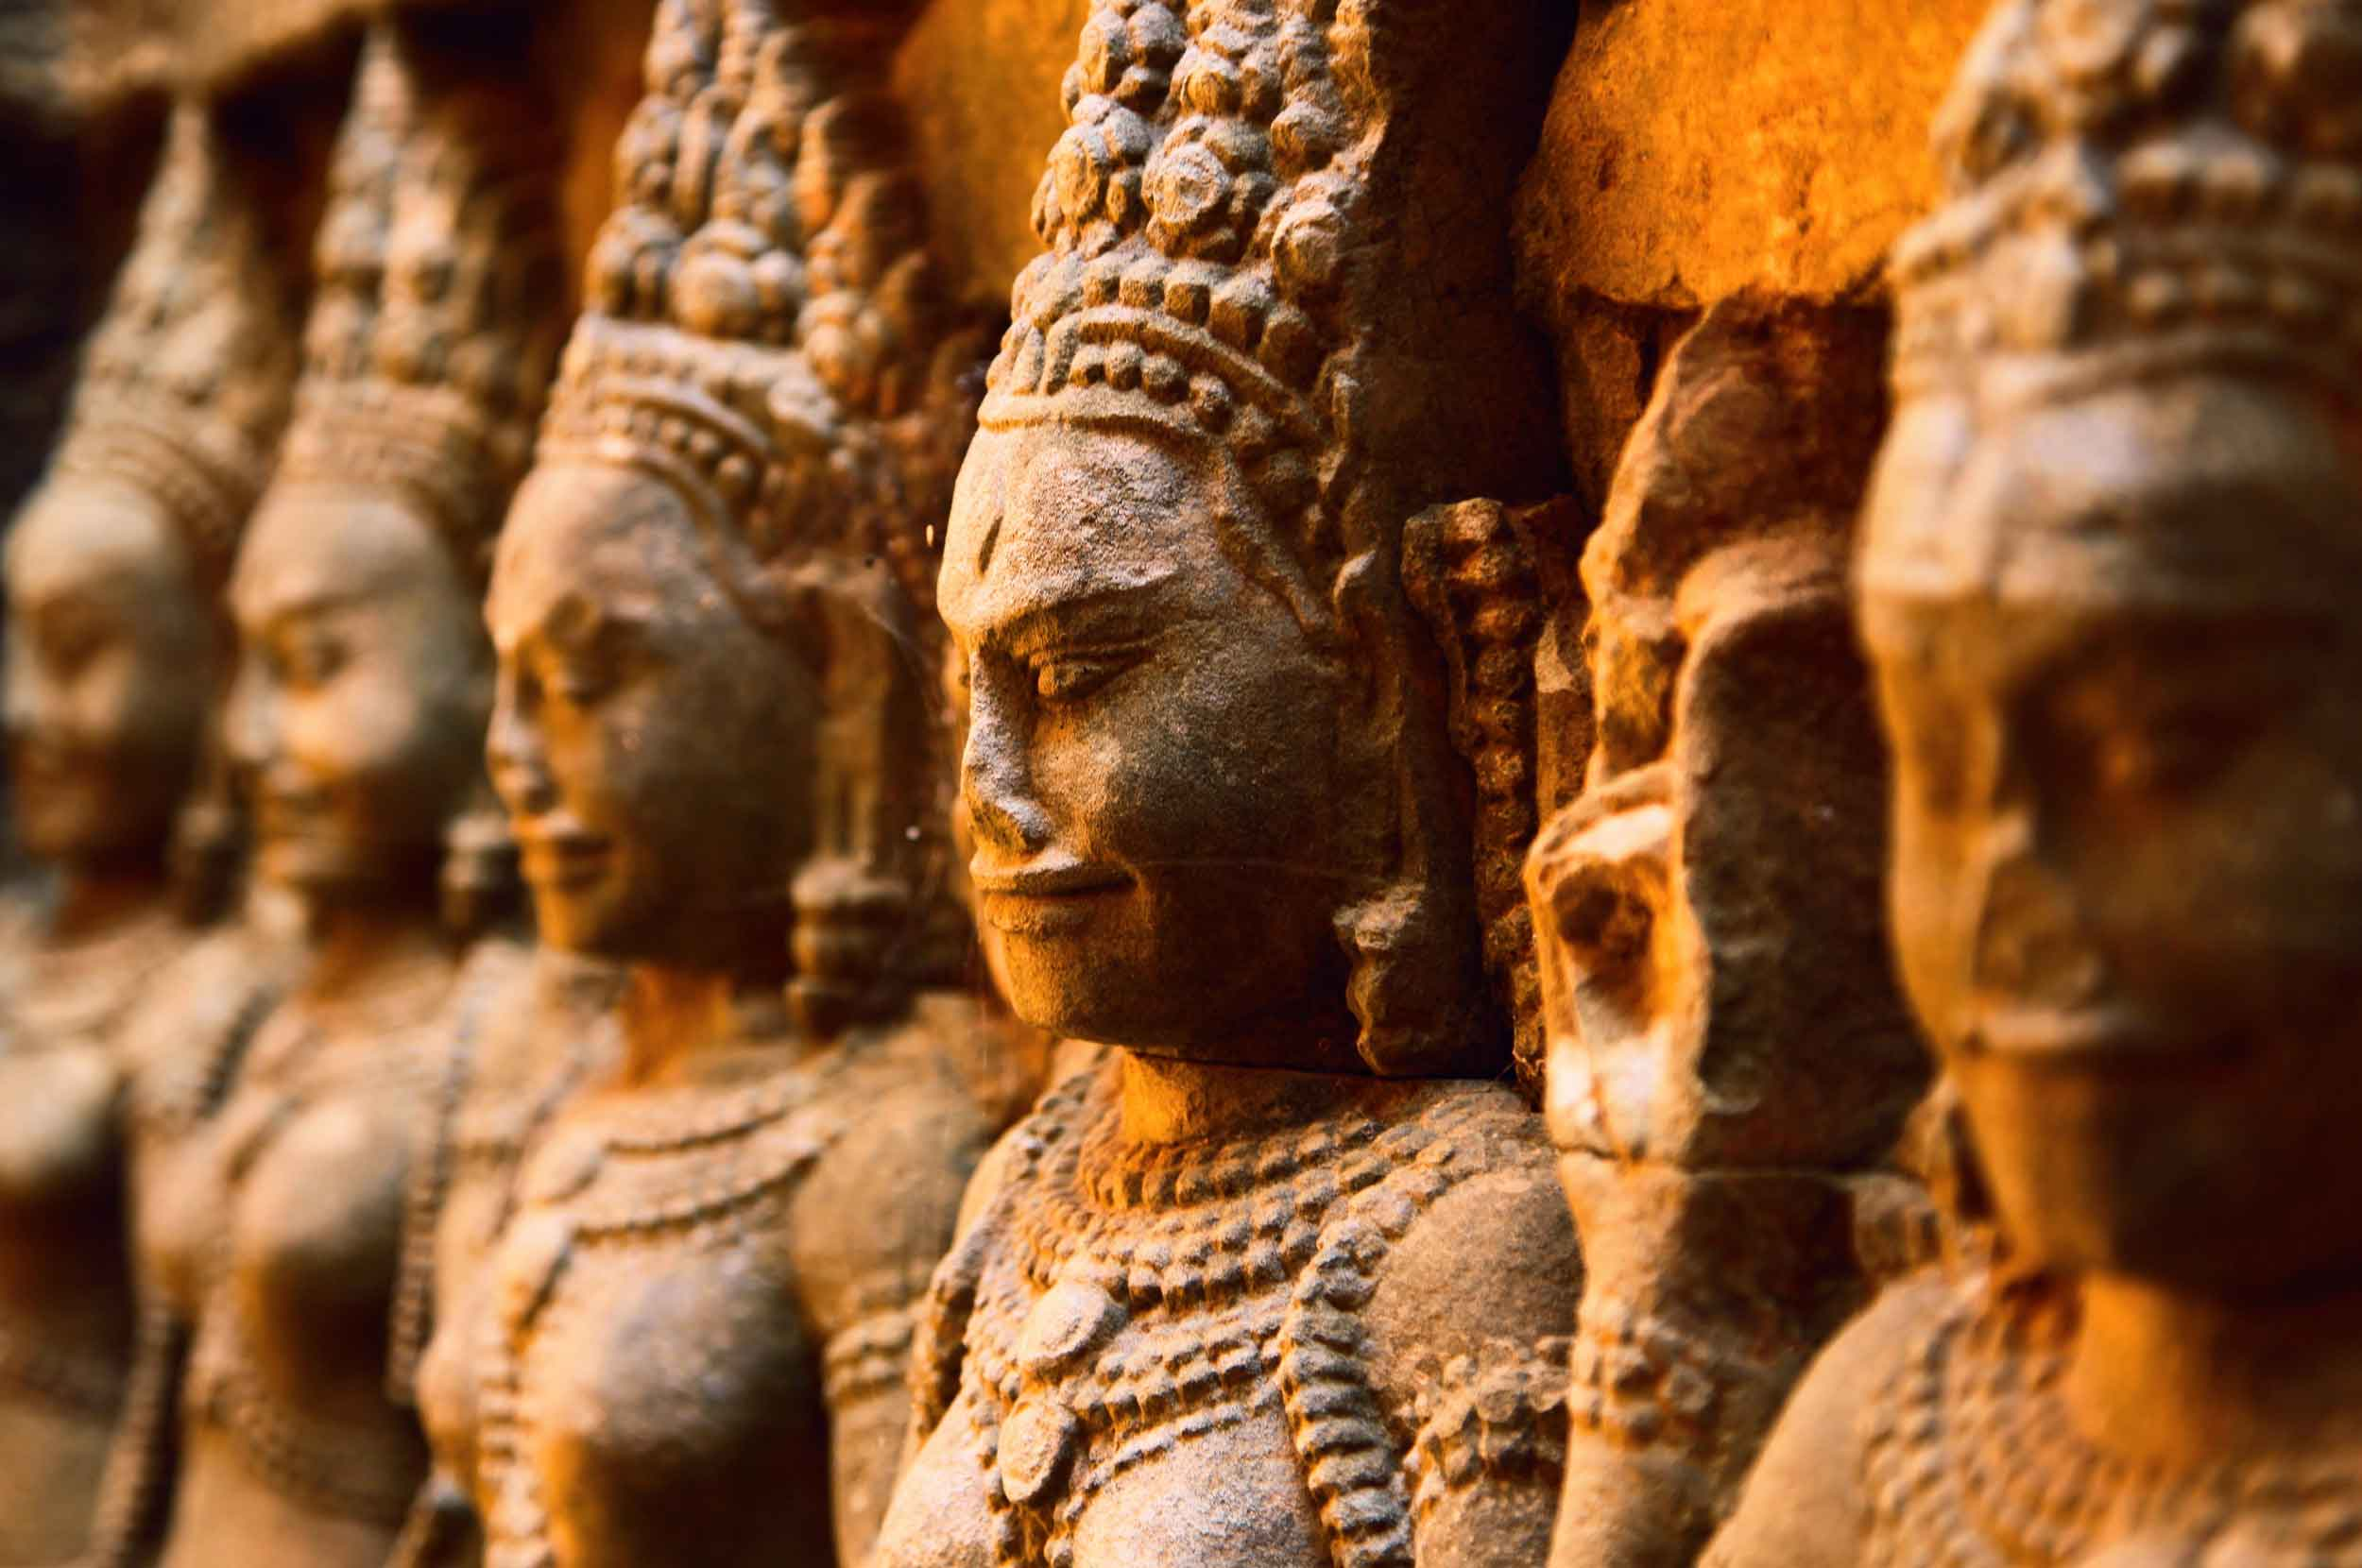 The many faces of Ancient Angkor